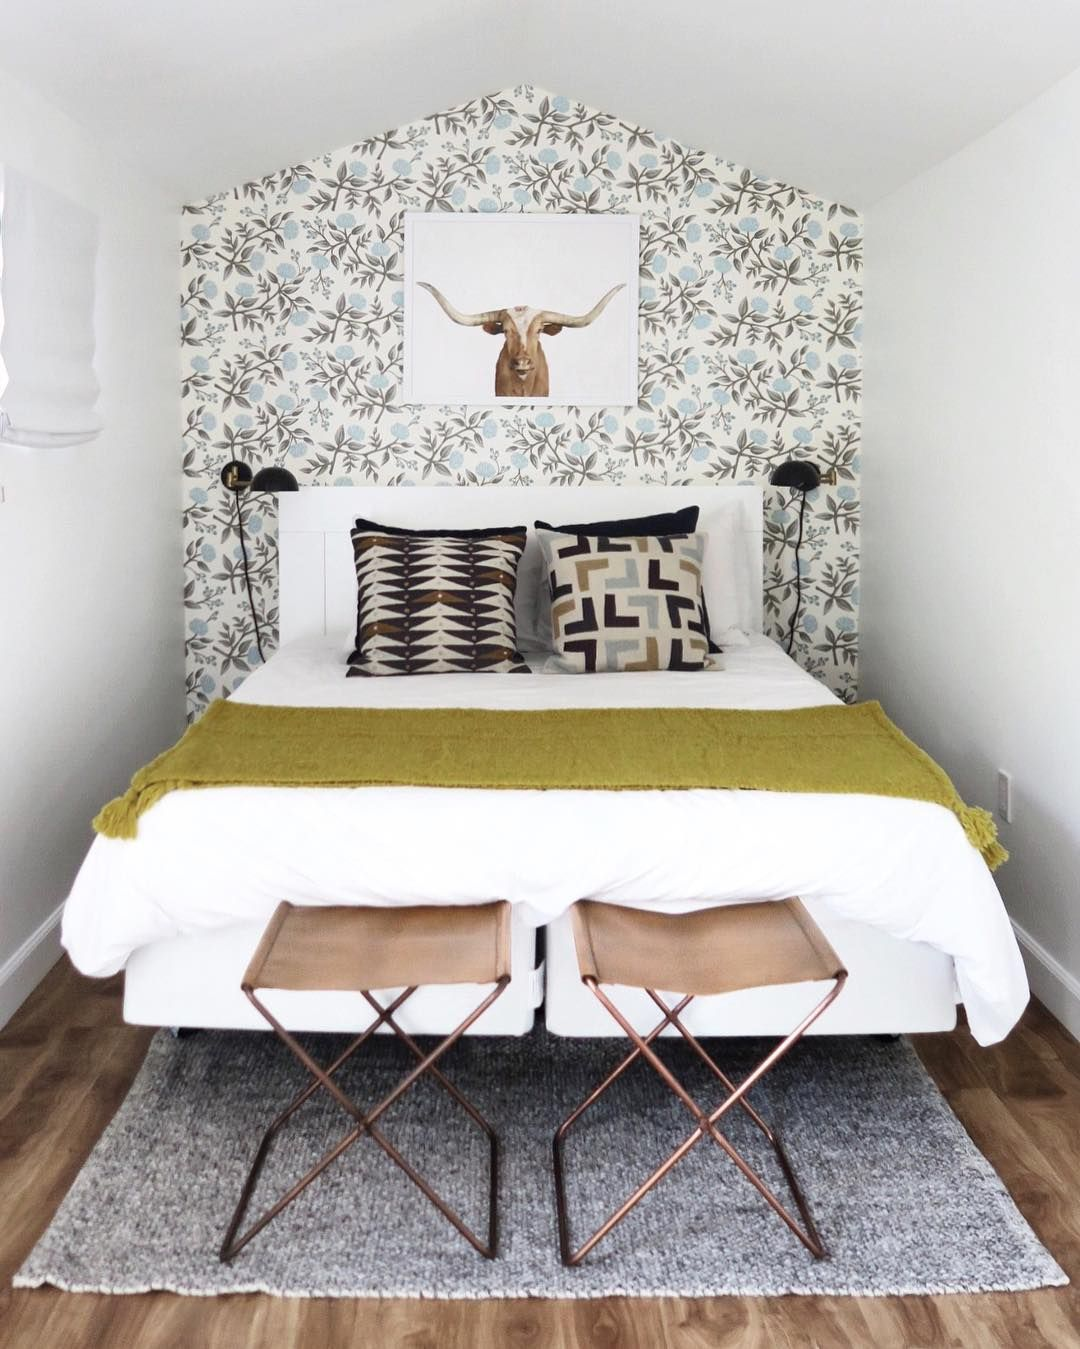 Two Small Stools Paired With A Small Rug And Wallpaper Small Apartment Bedrooms Small Guest Bedroom Small Guest Rooms